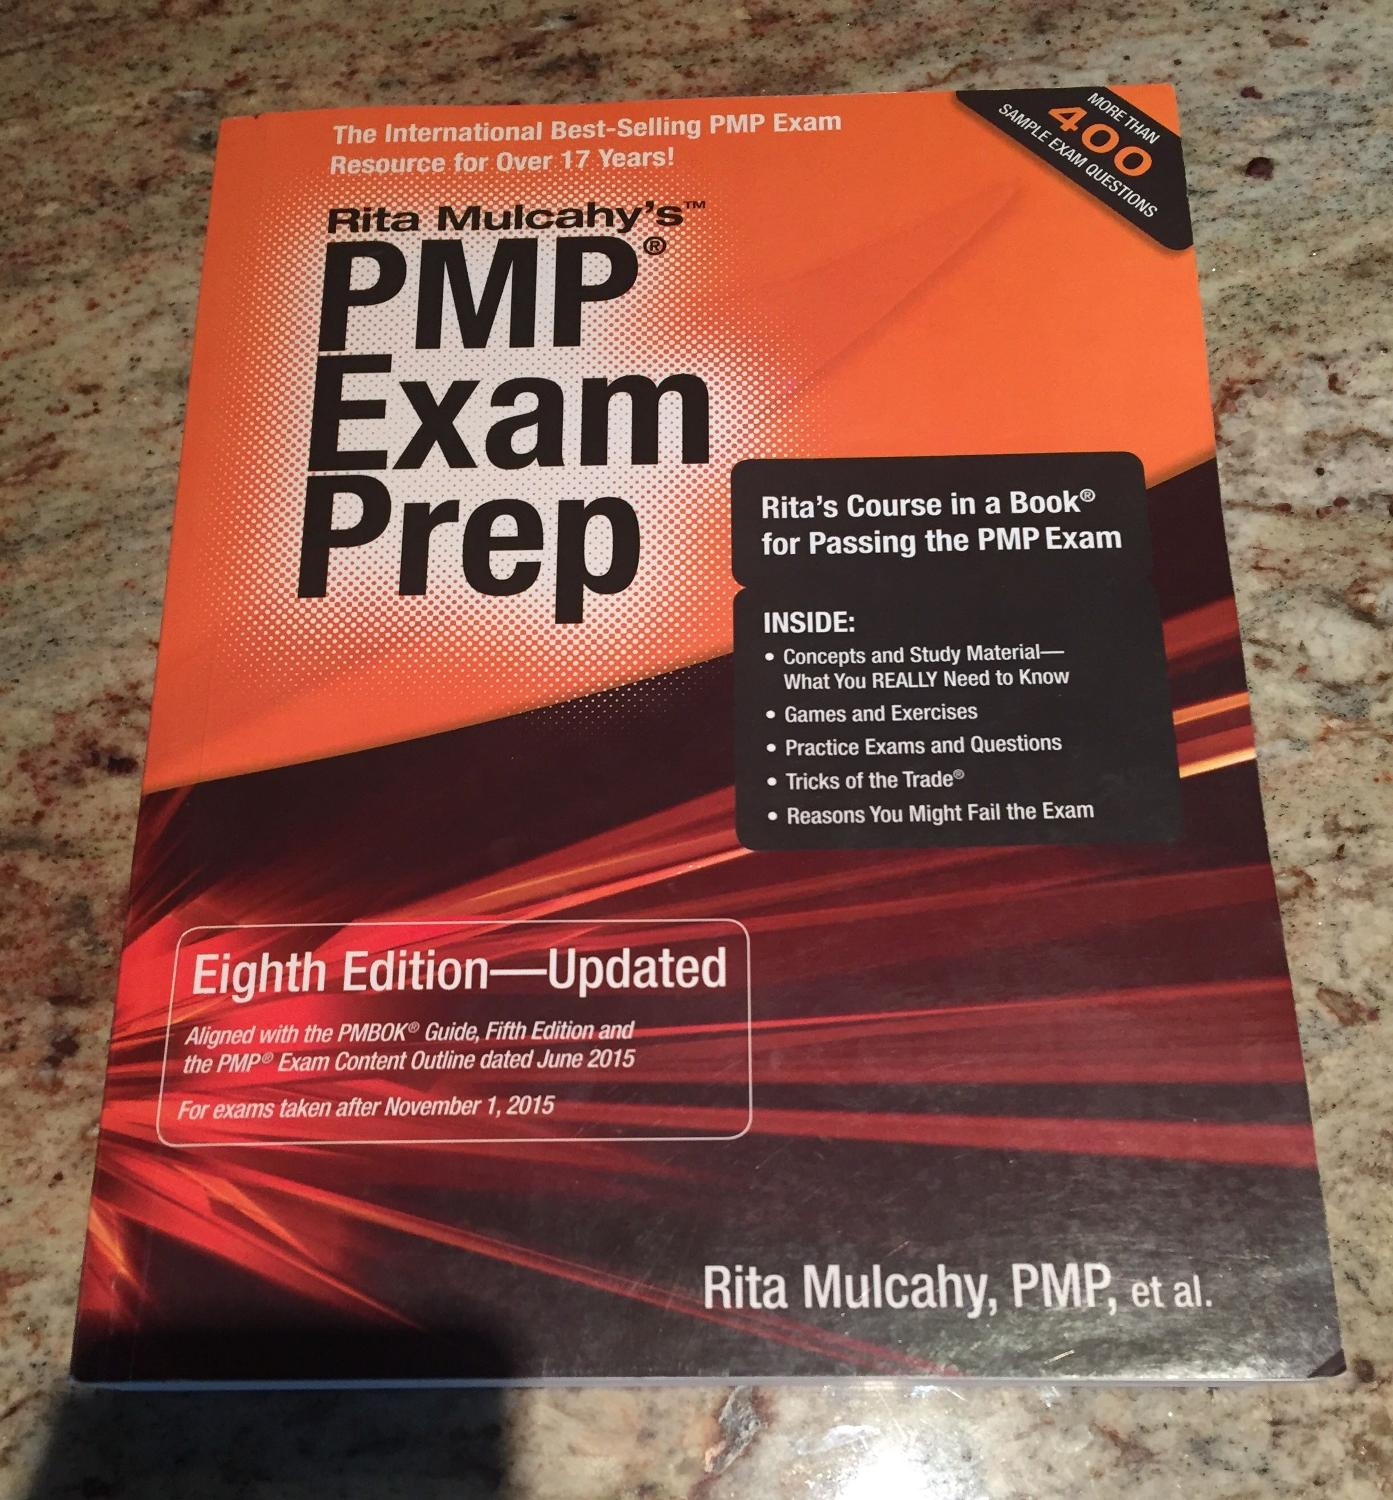 rita mulcahy 8th edition updated pdf download